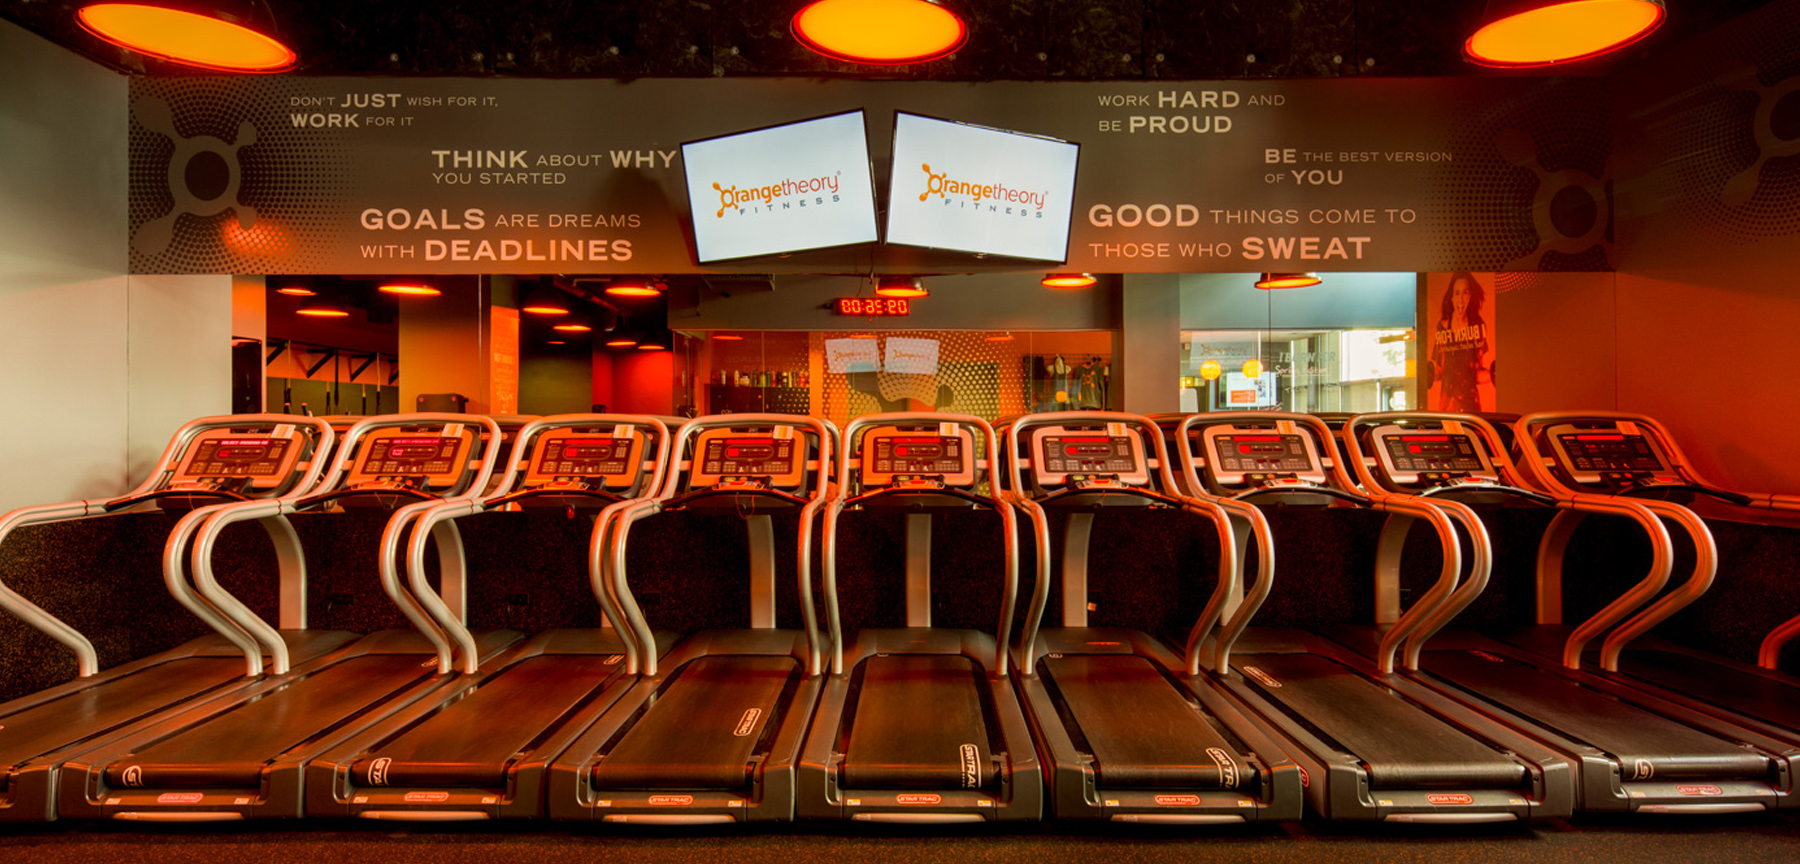 Orangetheory fitness treadmill area